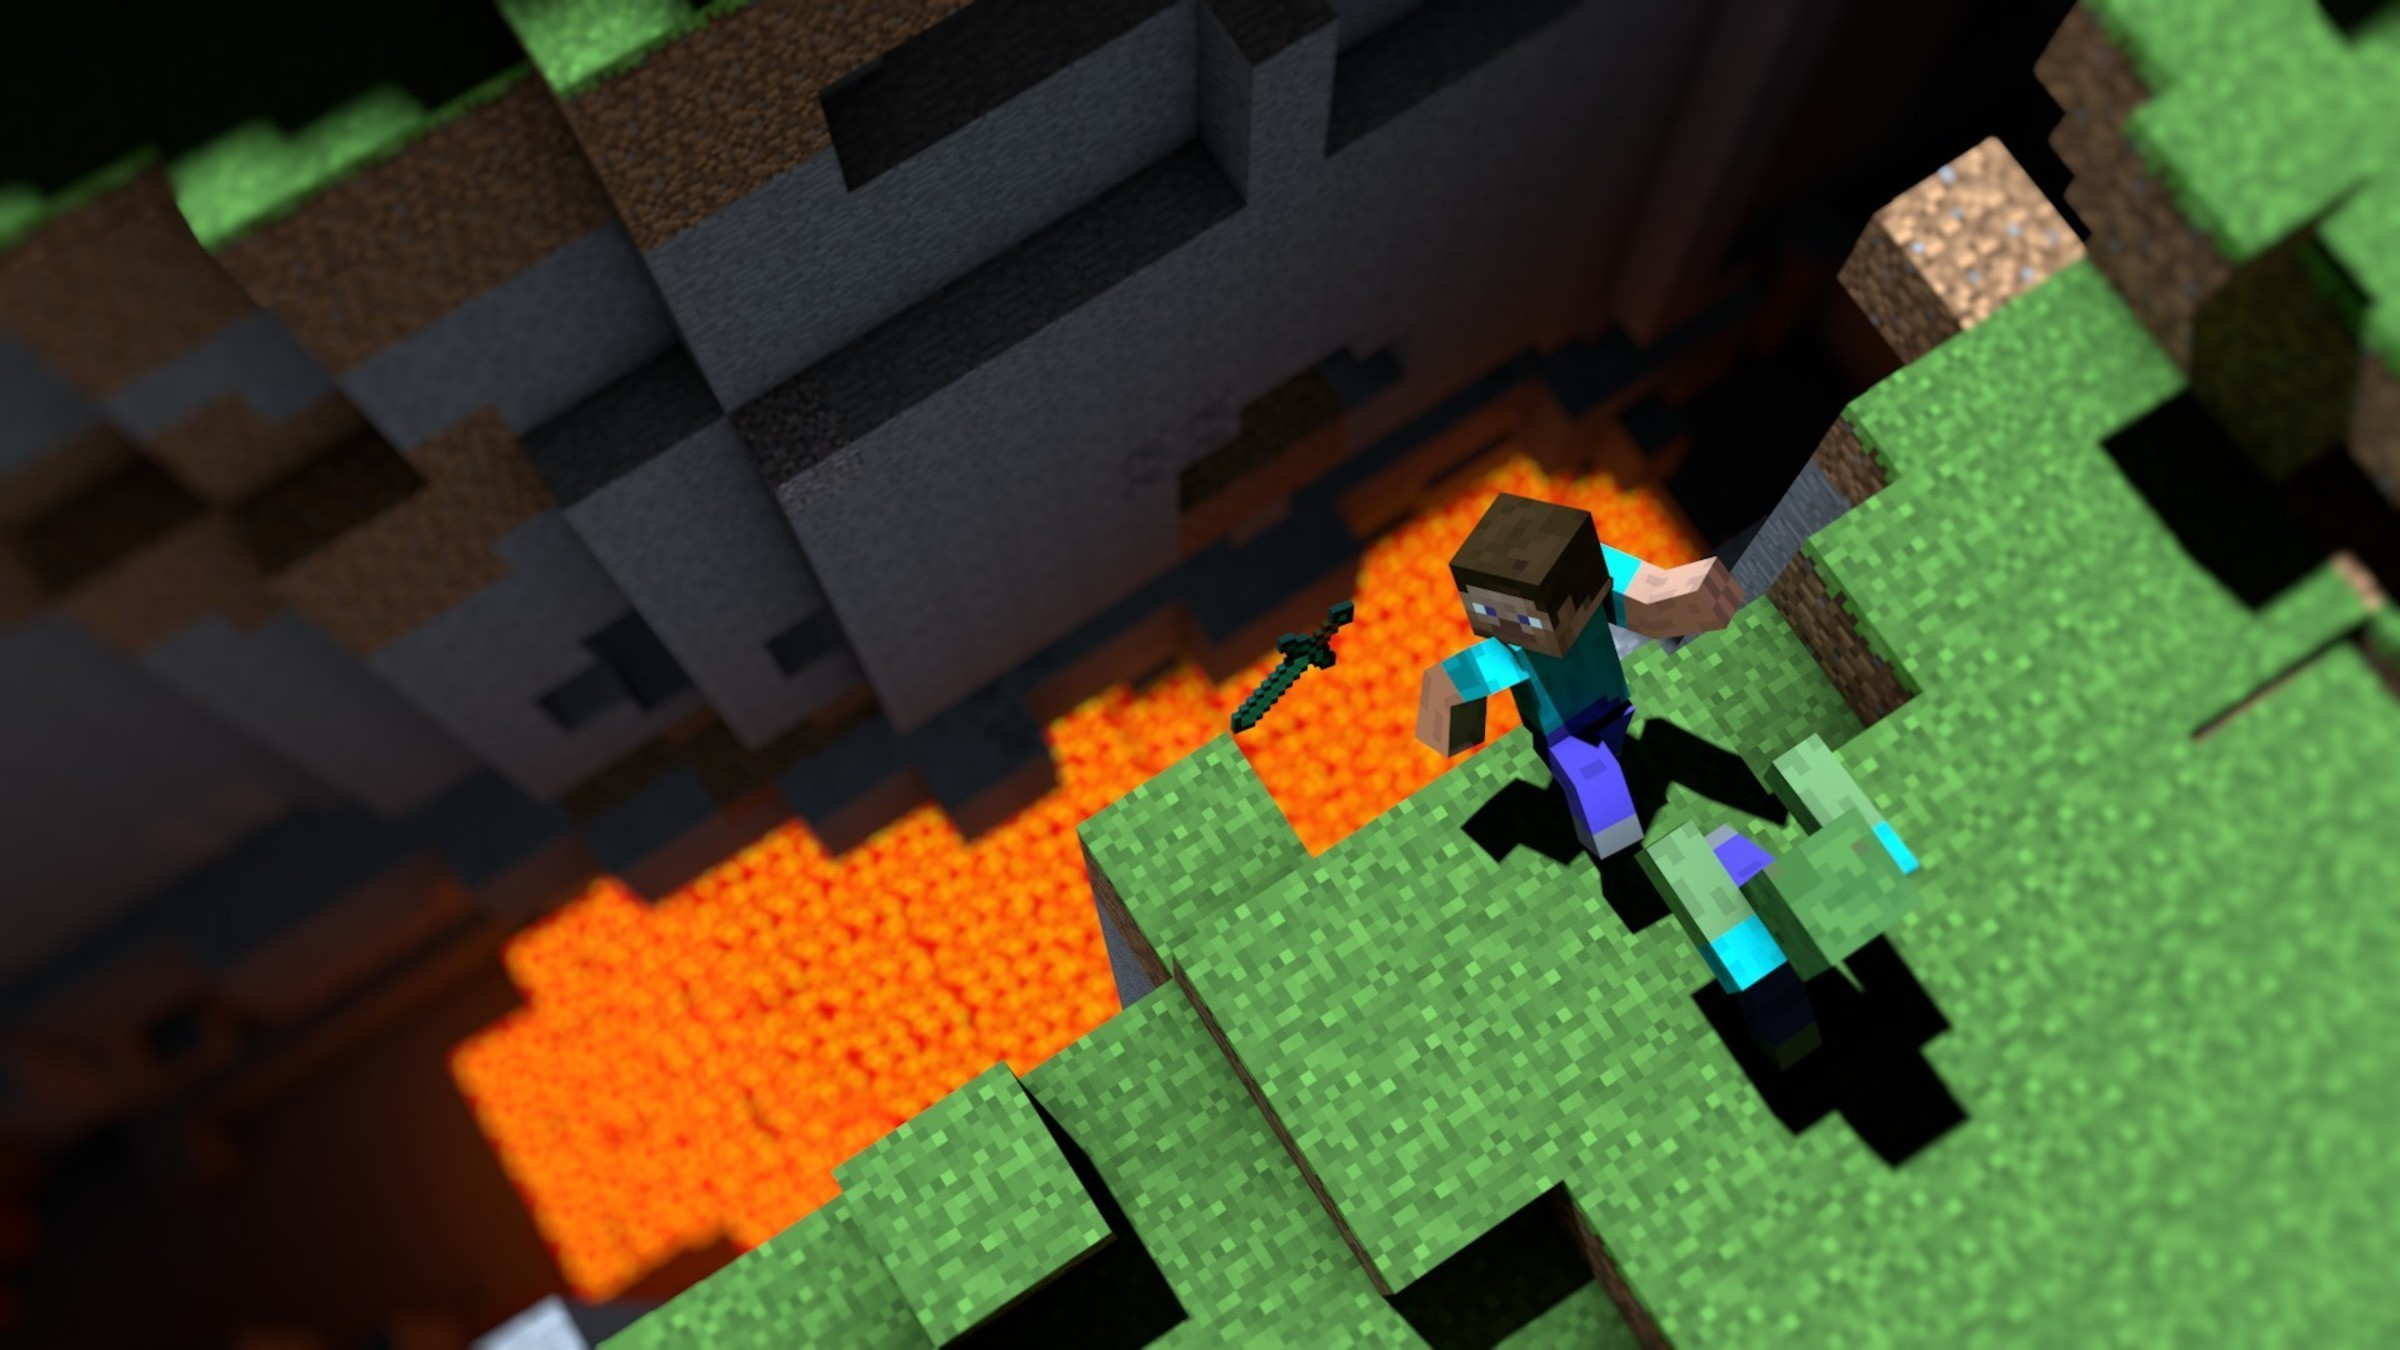 Minecraft Cliffs Lava Video Games Zombies Wallpaper AllWallpaper - Minecraft videospiele